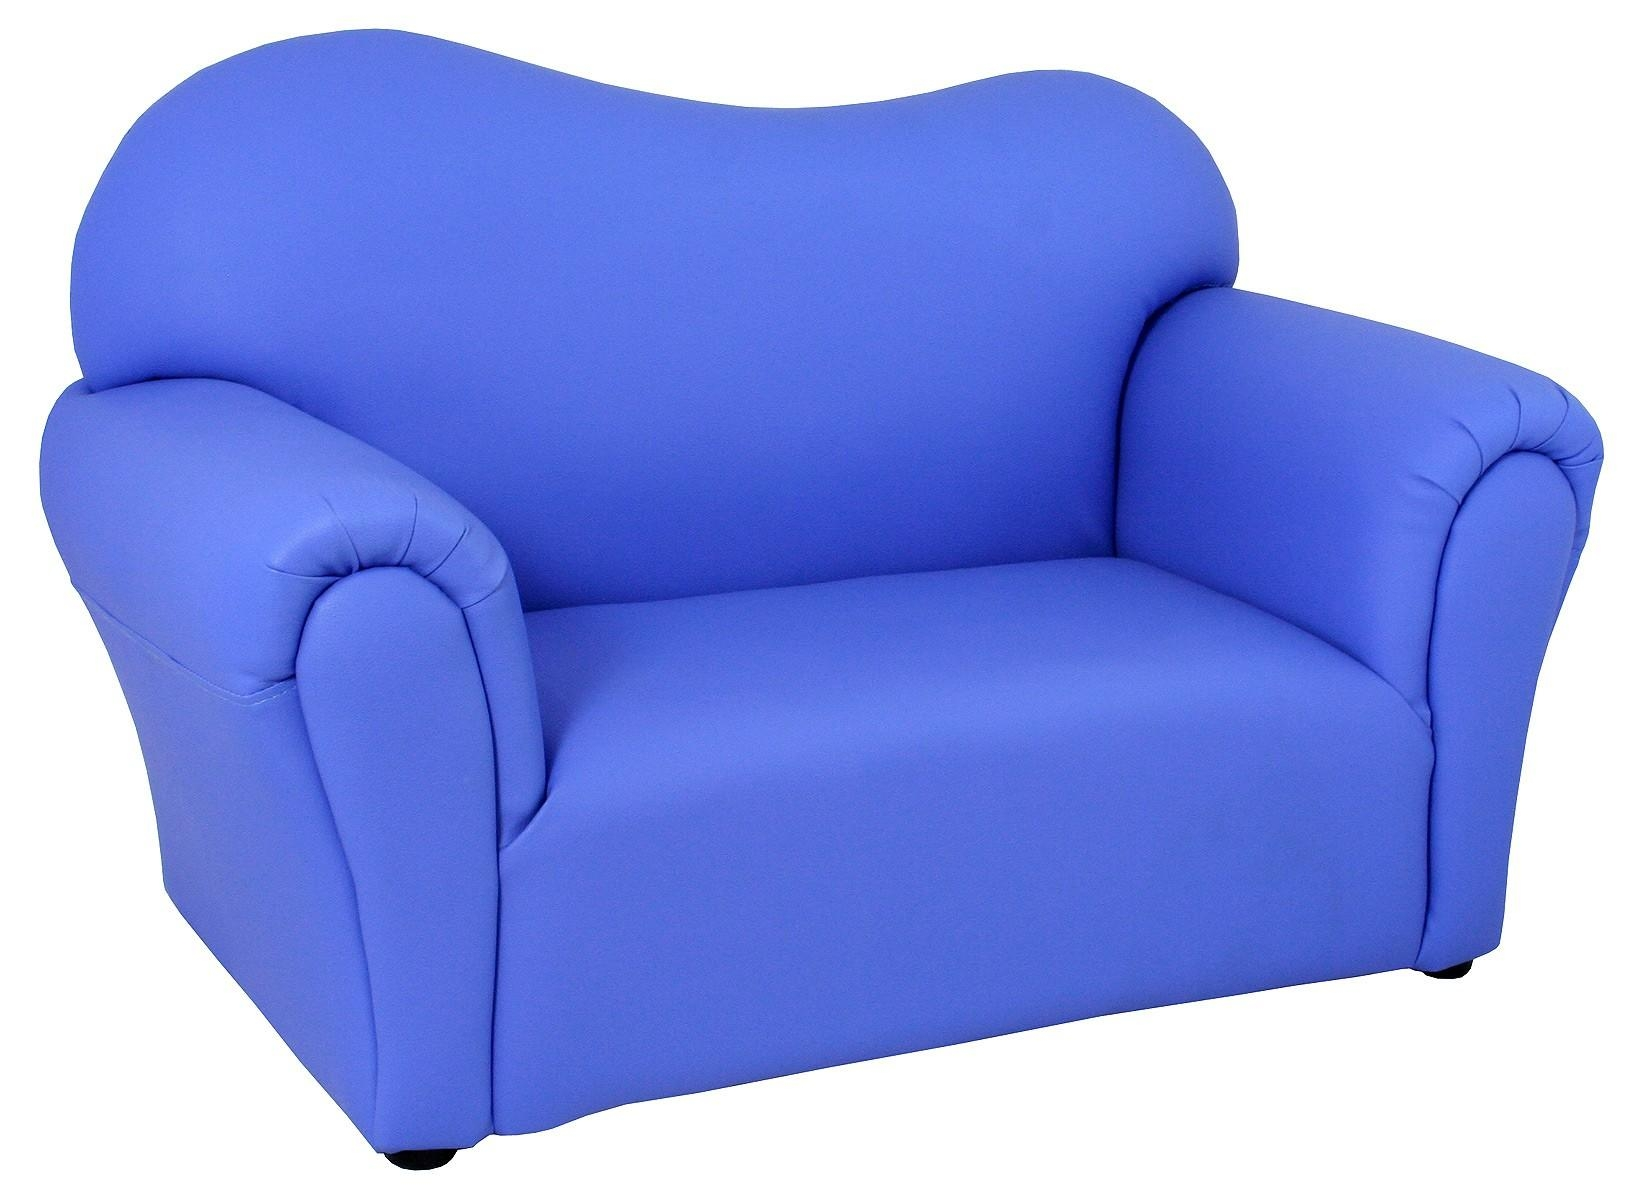 Childrens Blue Mini Sofa – Be Fabulous! Inside Children Sofa Chairs (View 17 of 22)